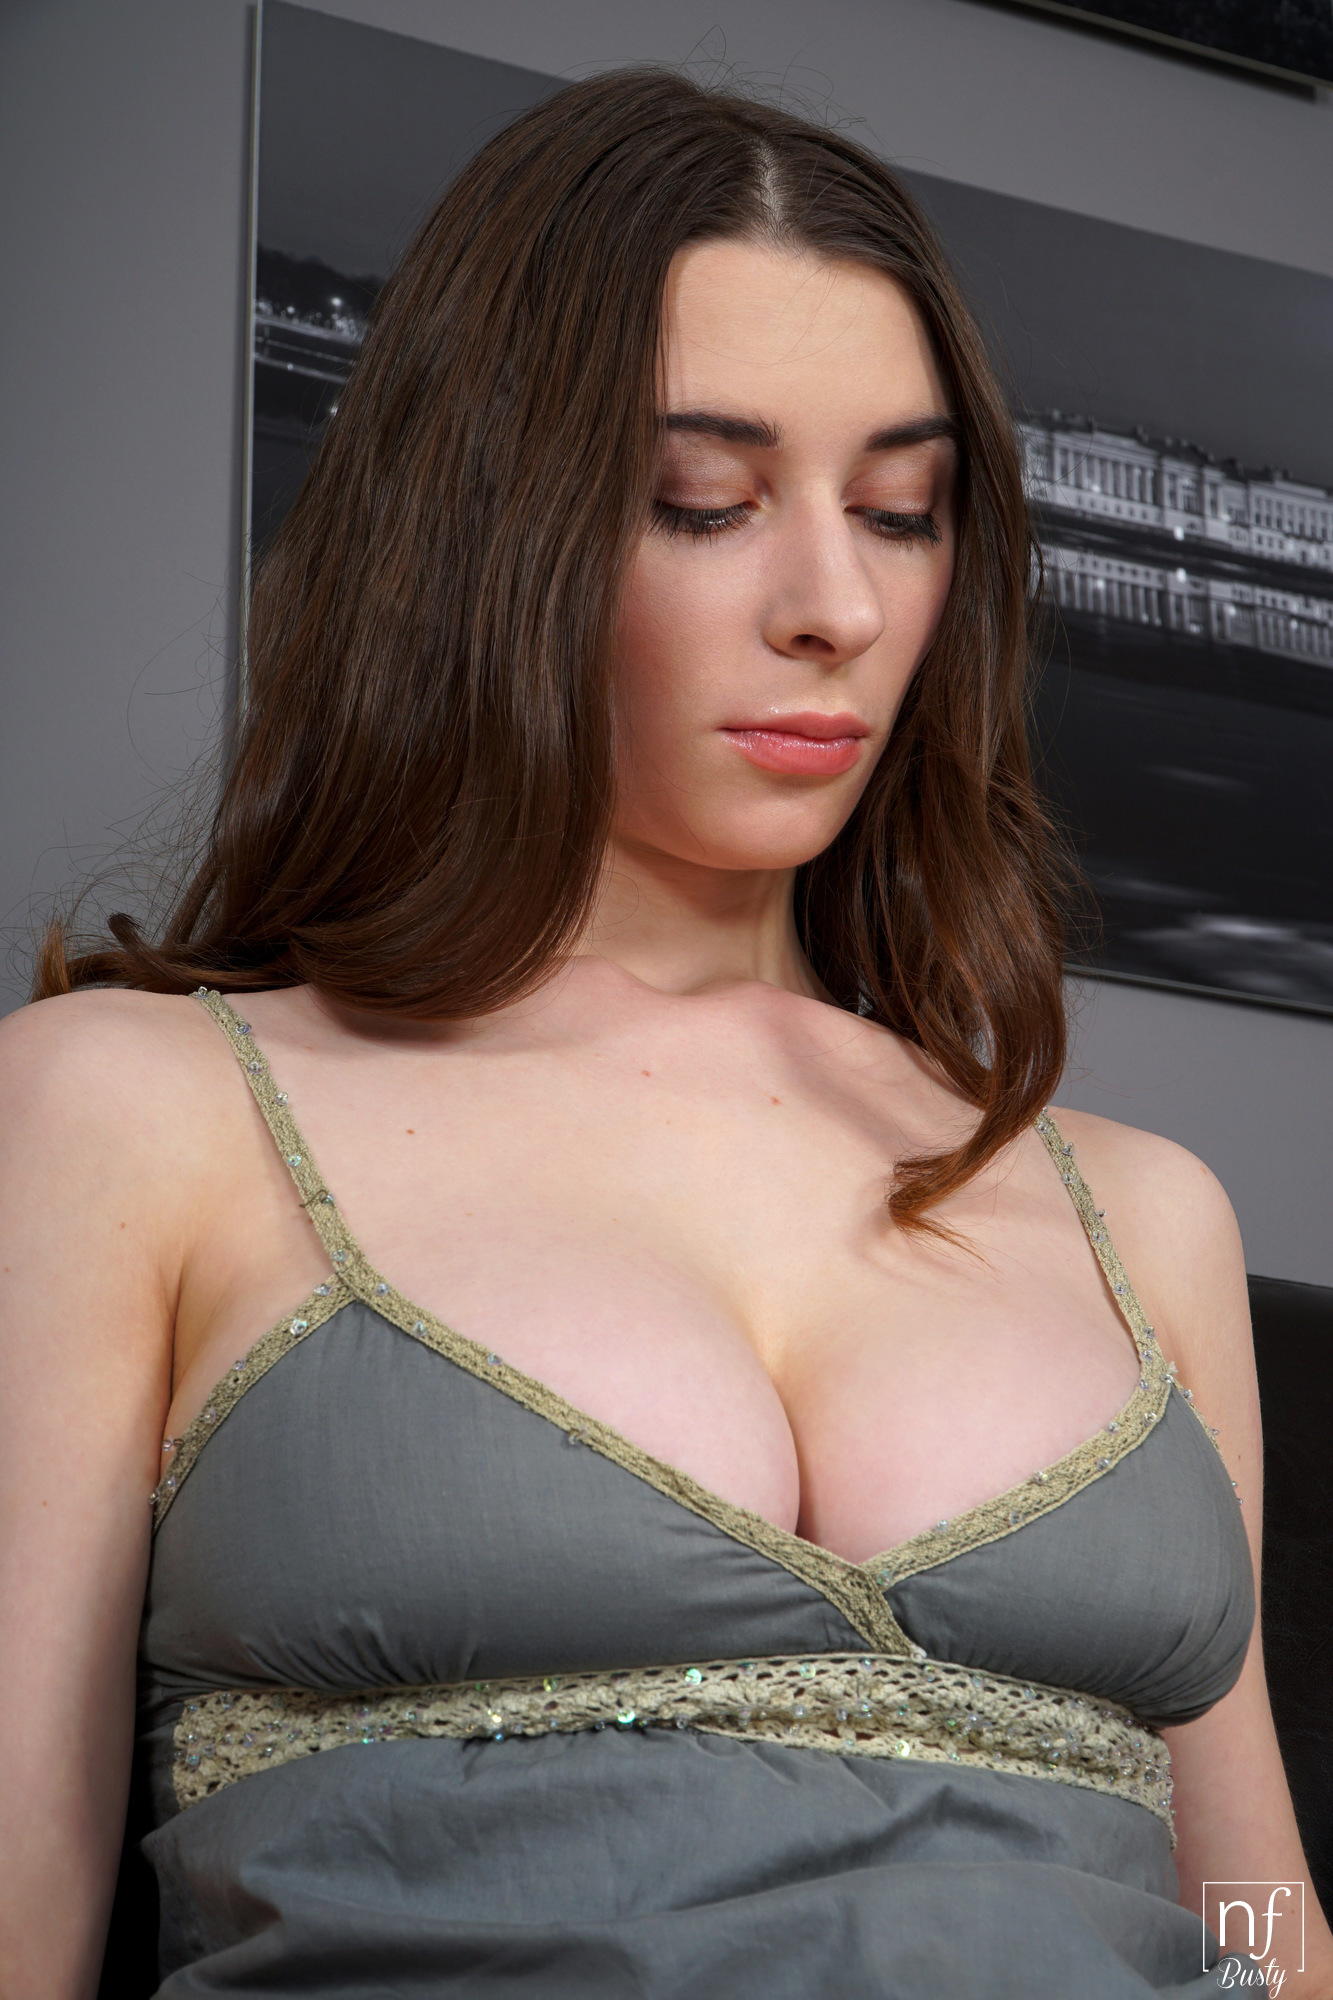 Busty Natural First Porn clary full natural tits nf busty - curvy erotic